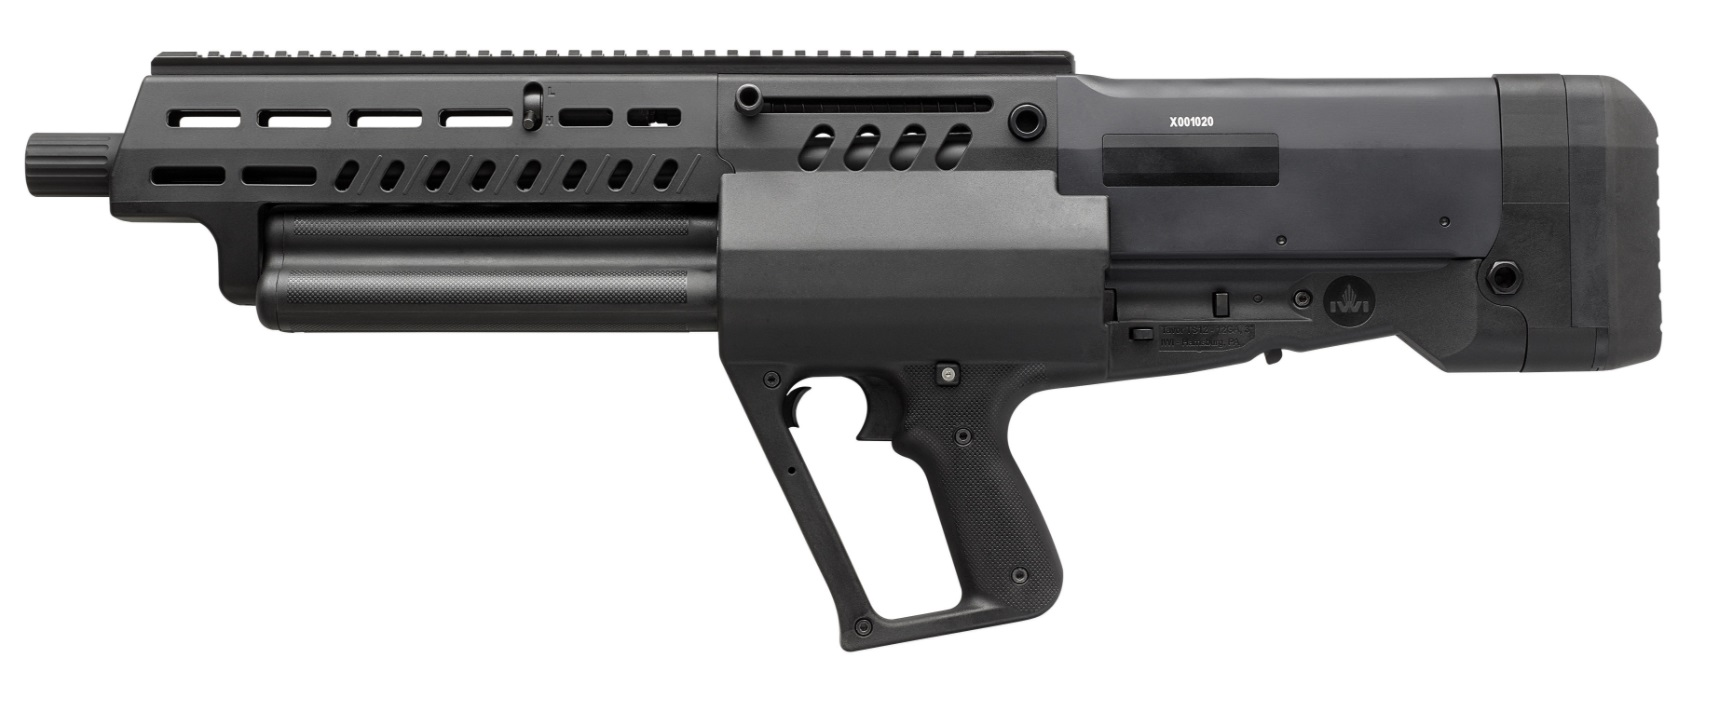 IWI - Israel Weapon Industries TAVOR TS12 BULLPUP 12 GAUGE